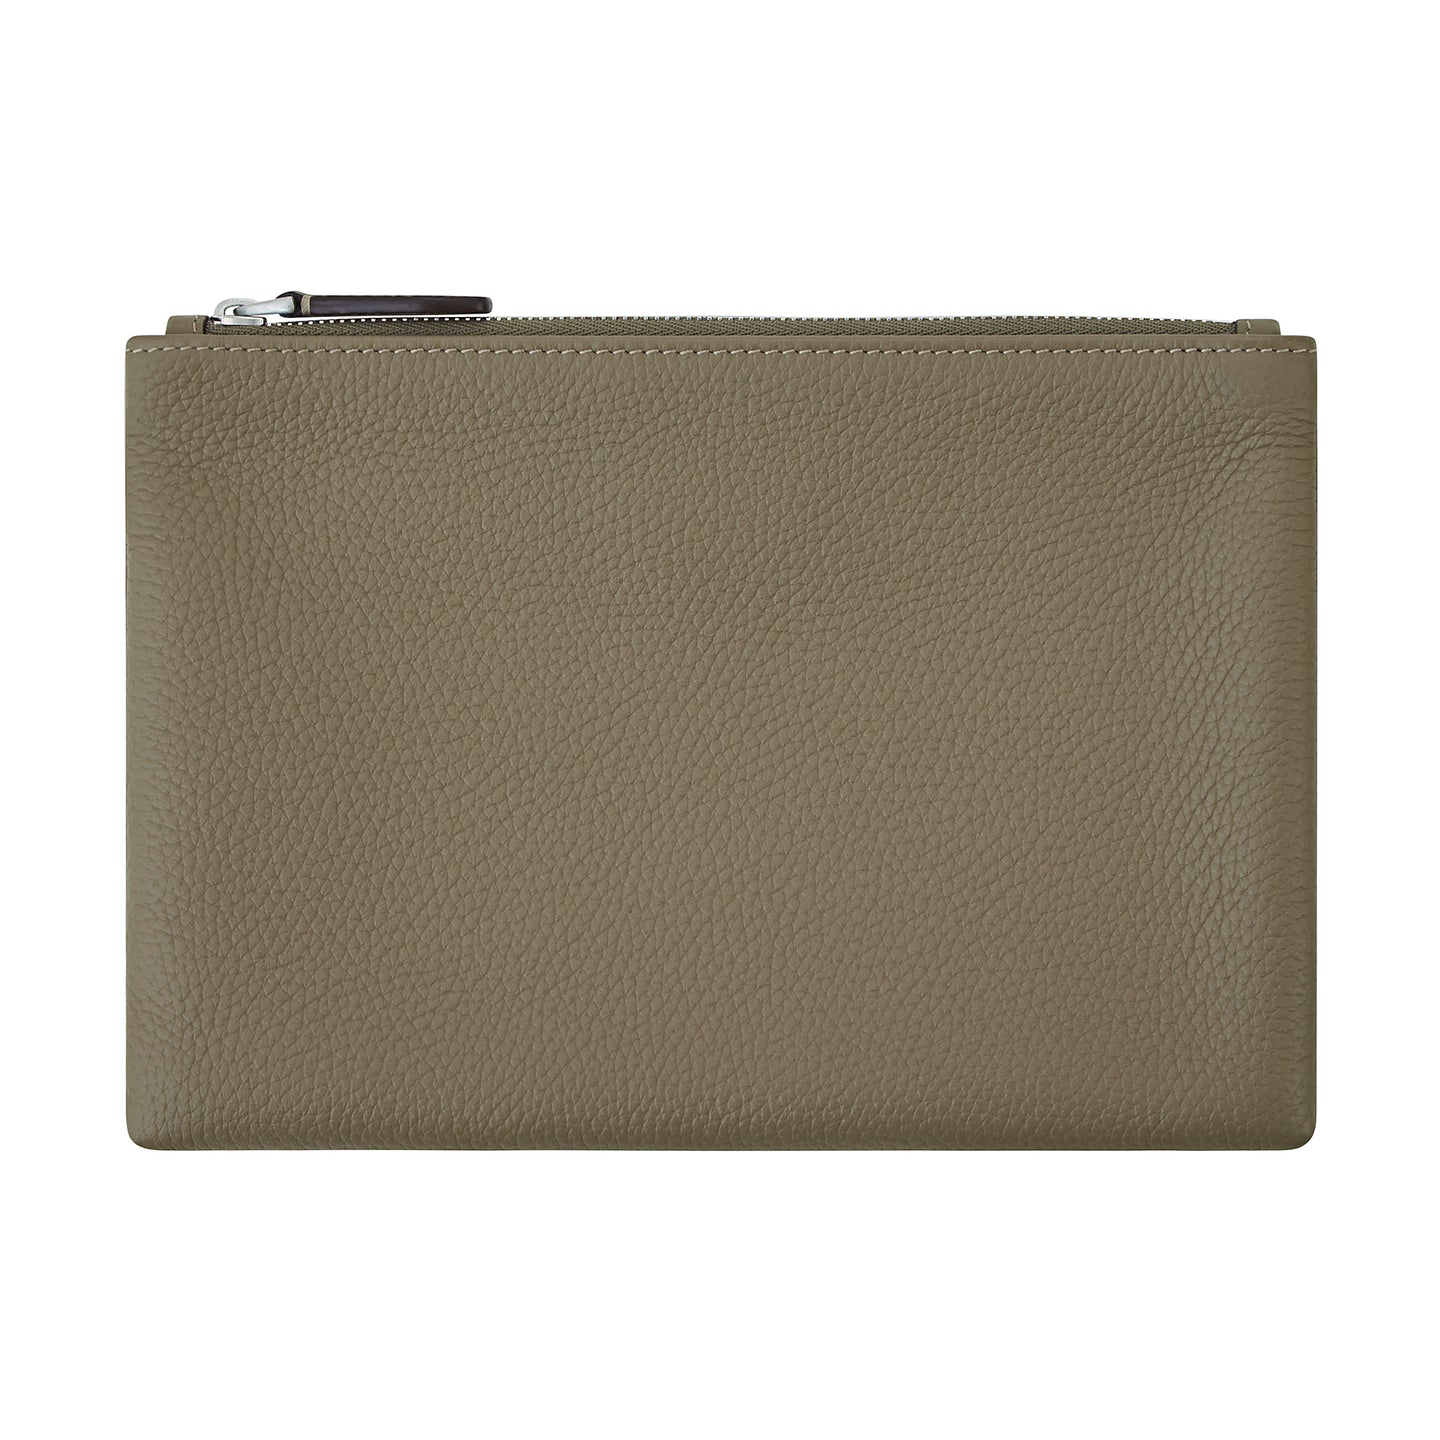 Tony 22 Clutch Beige